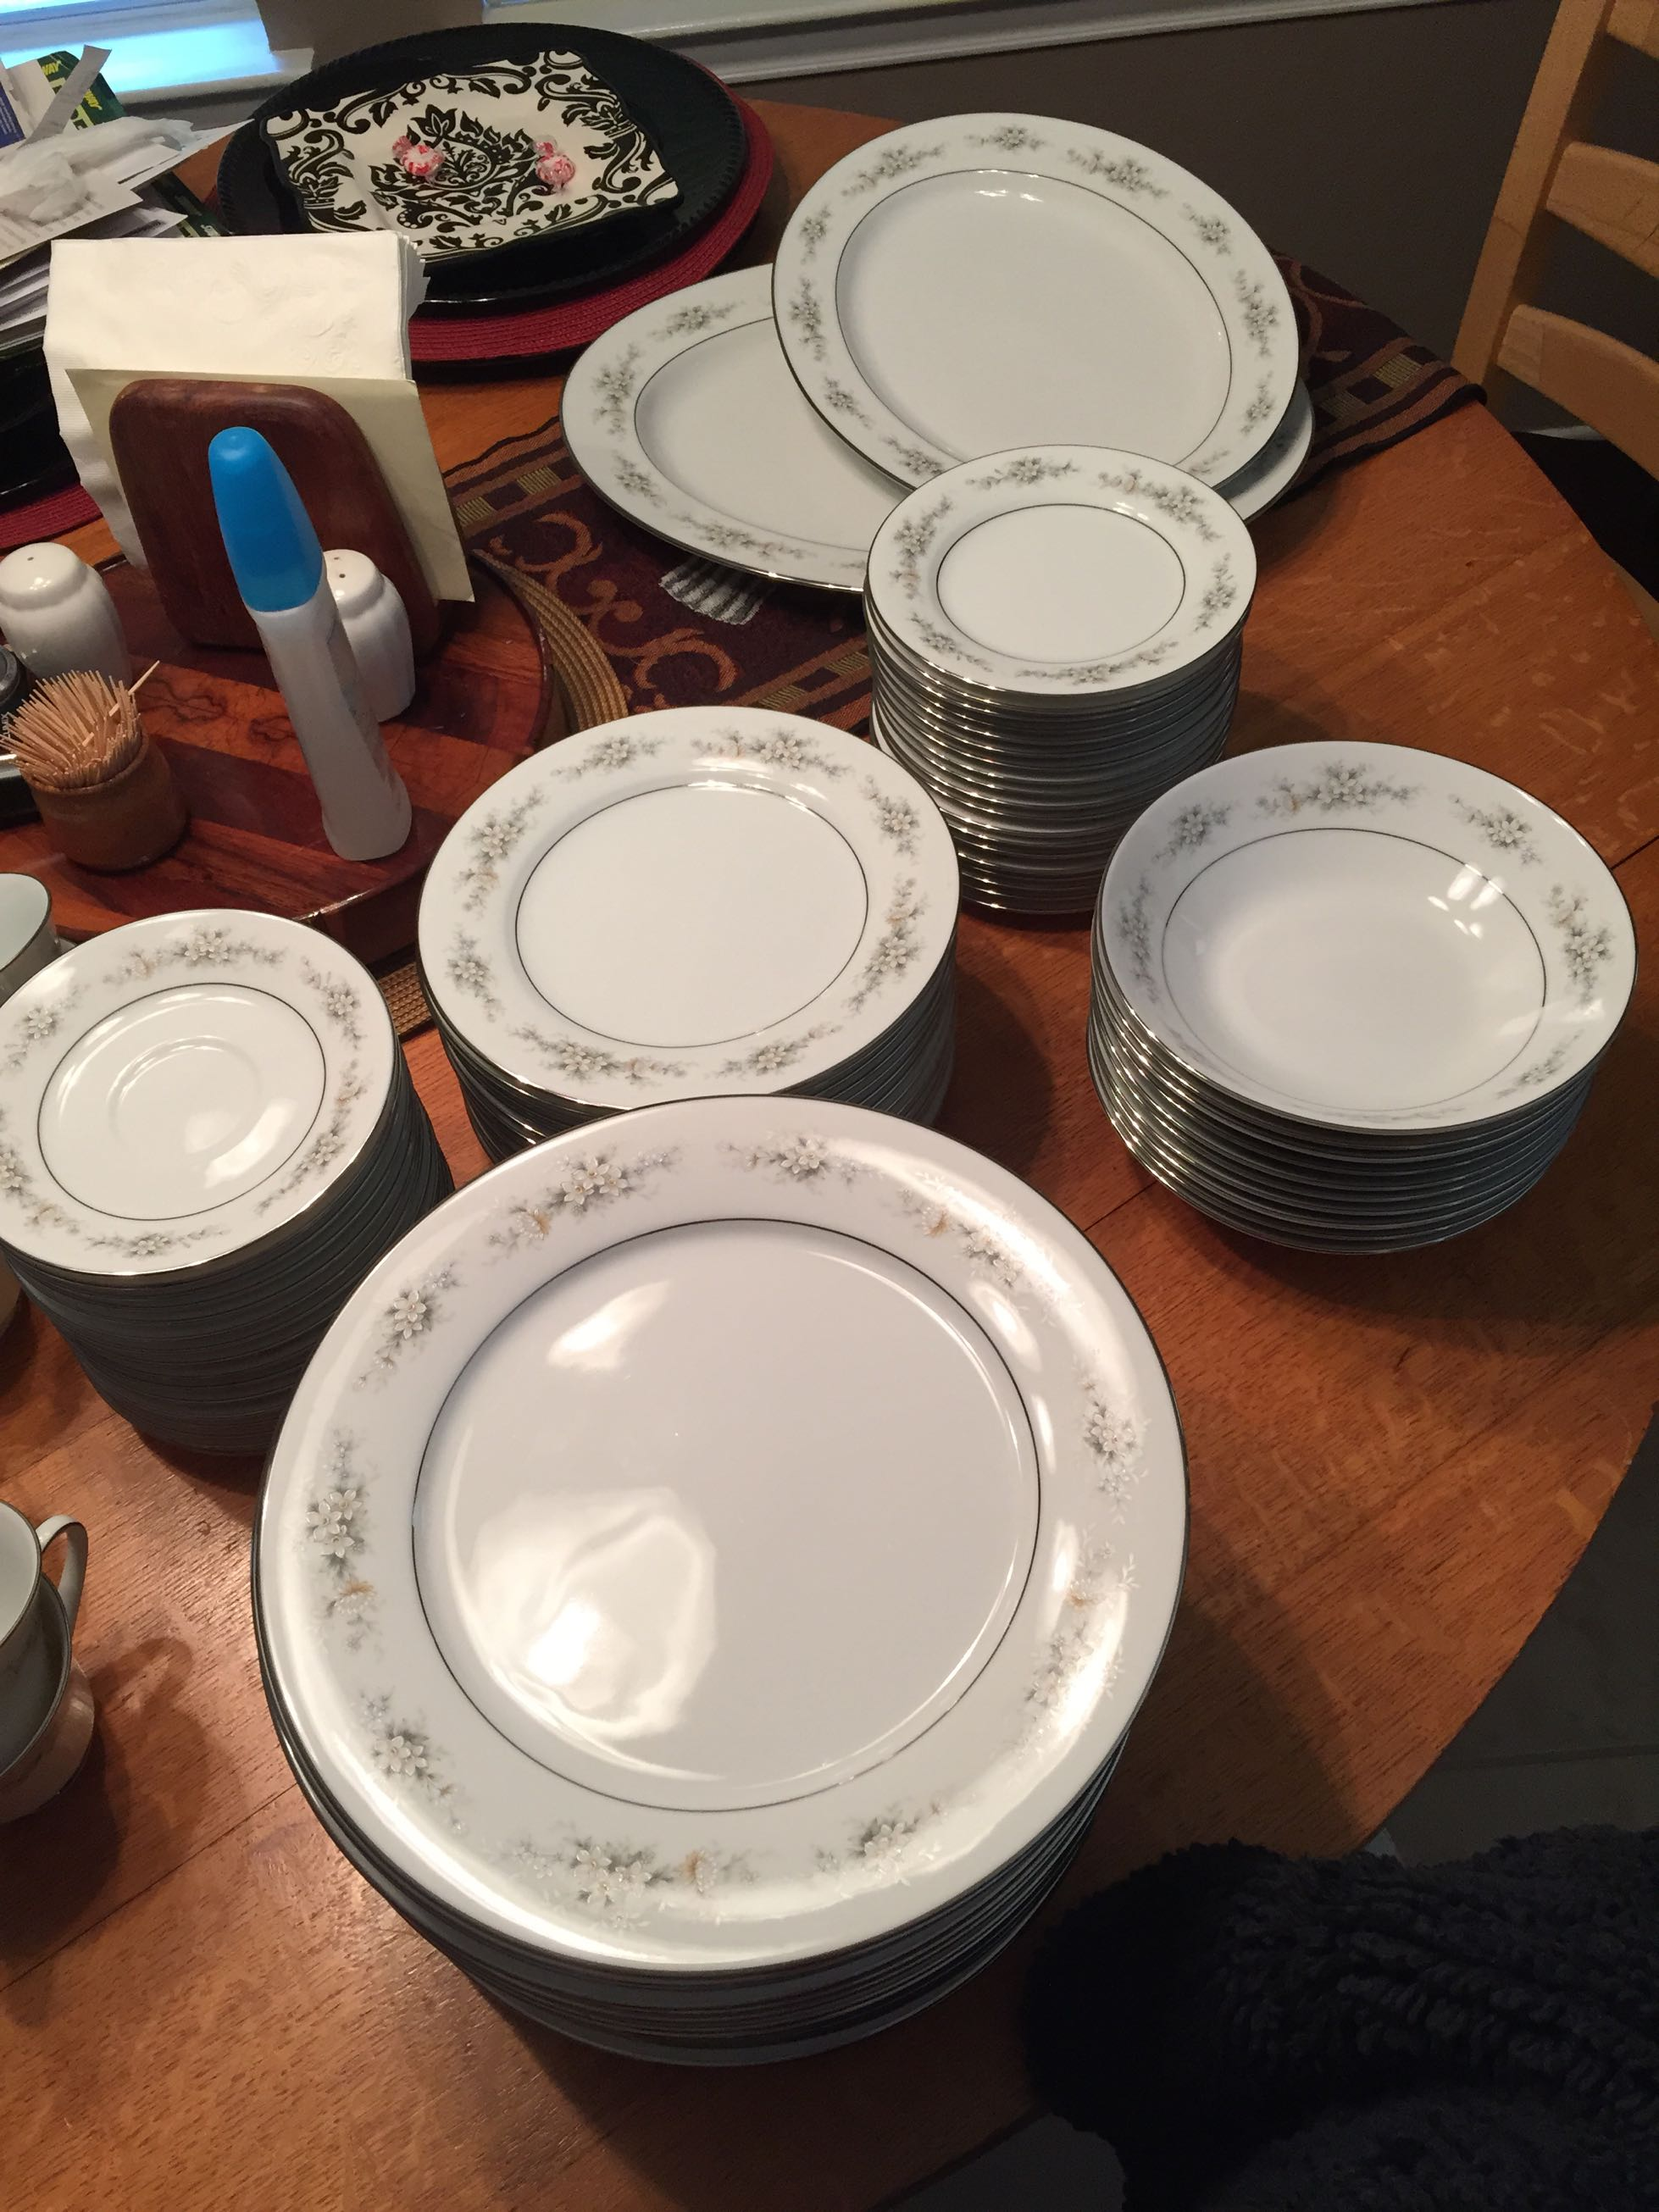 I Have A Set Of Noritake Melissa 3080 Fine China That I Don't Ever